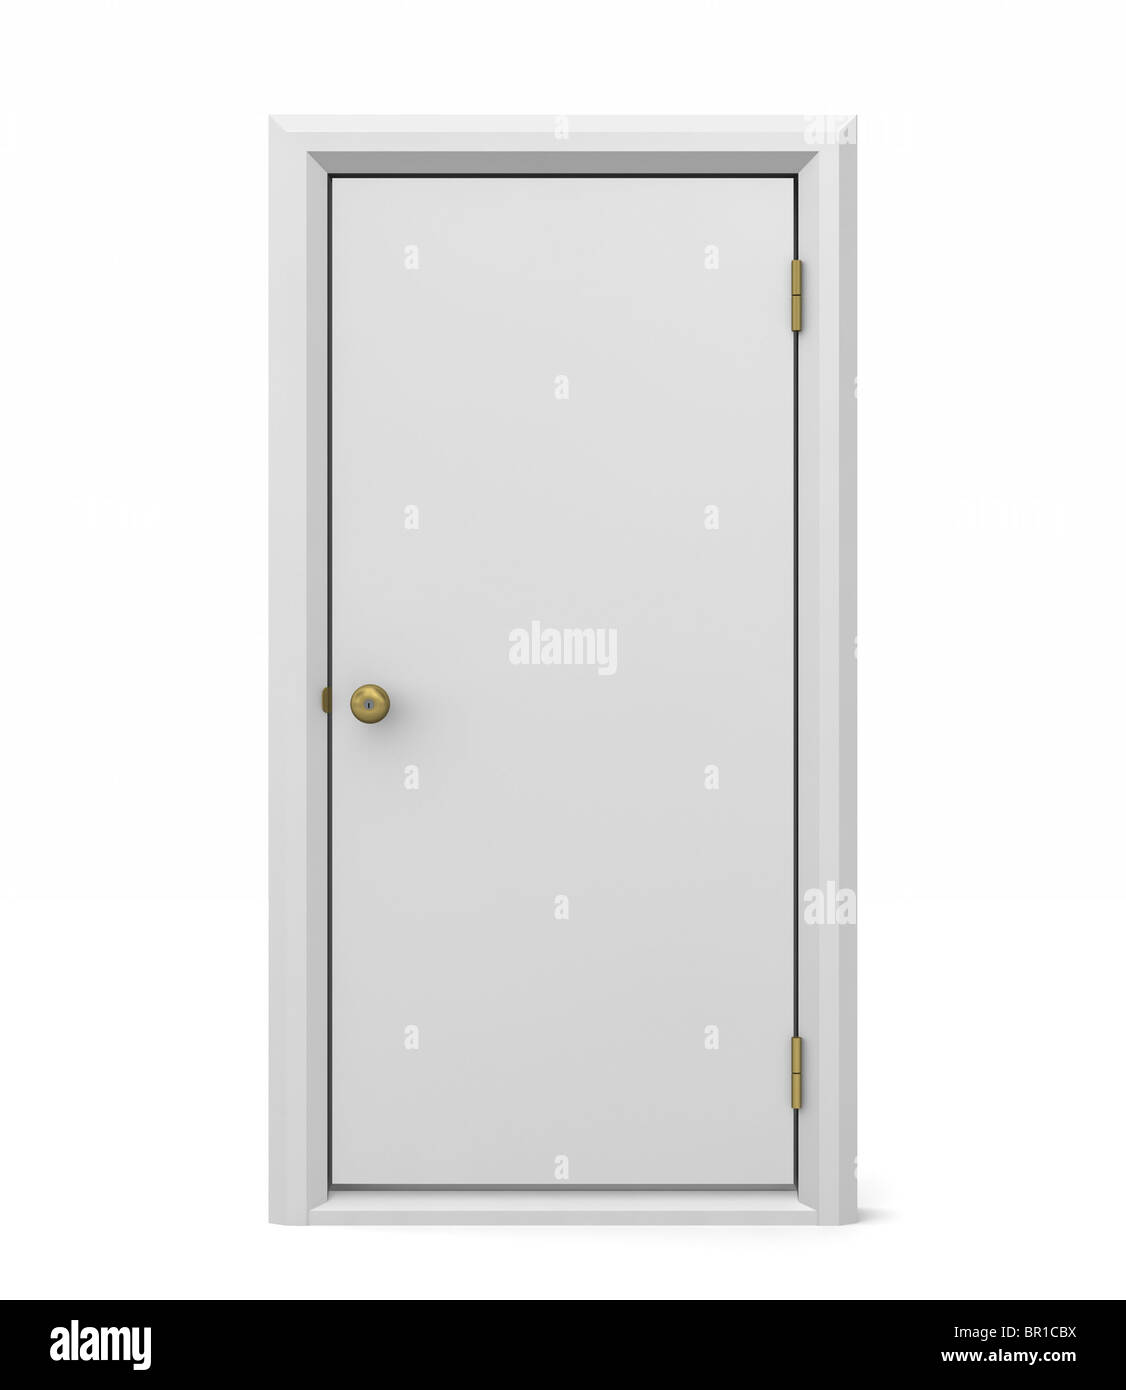 Simple white solid door and door frame free standing on an isolated background  sc 1 st  Alamy & Simple white solid door and door frame free standing on an isolated ...